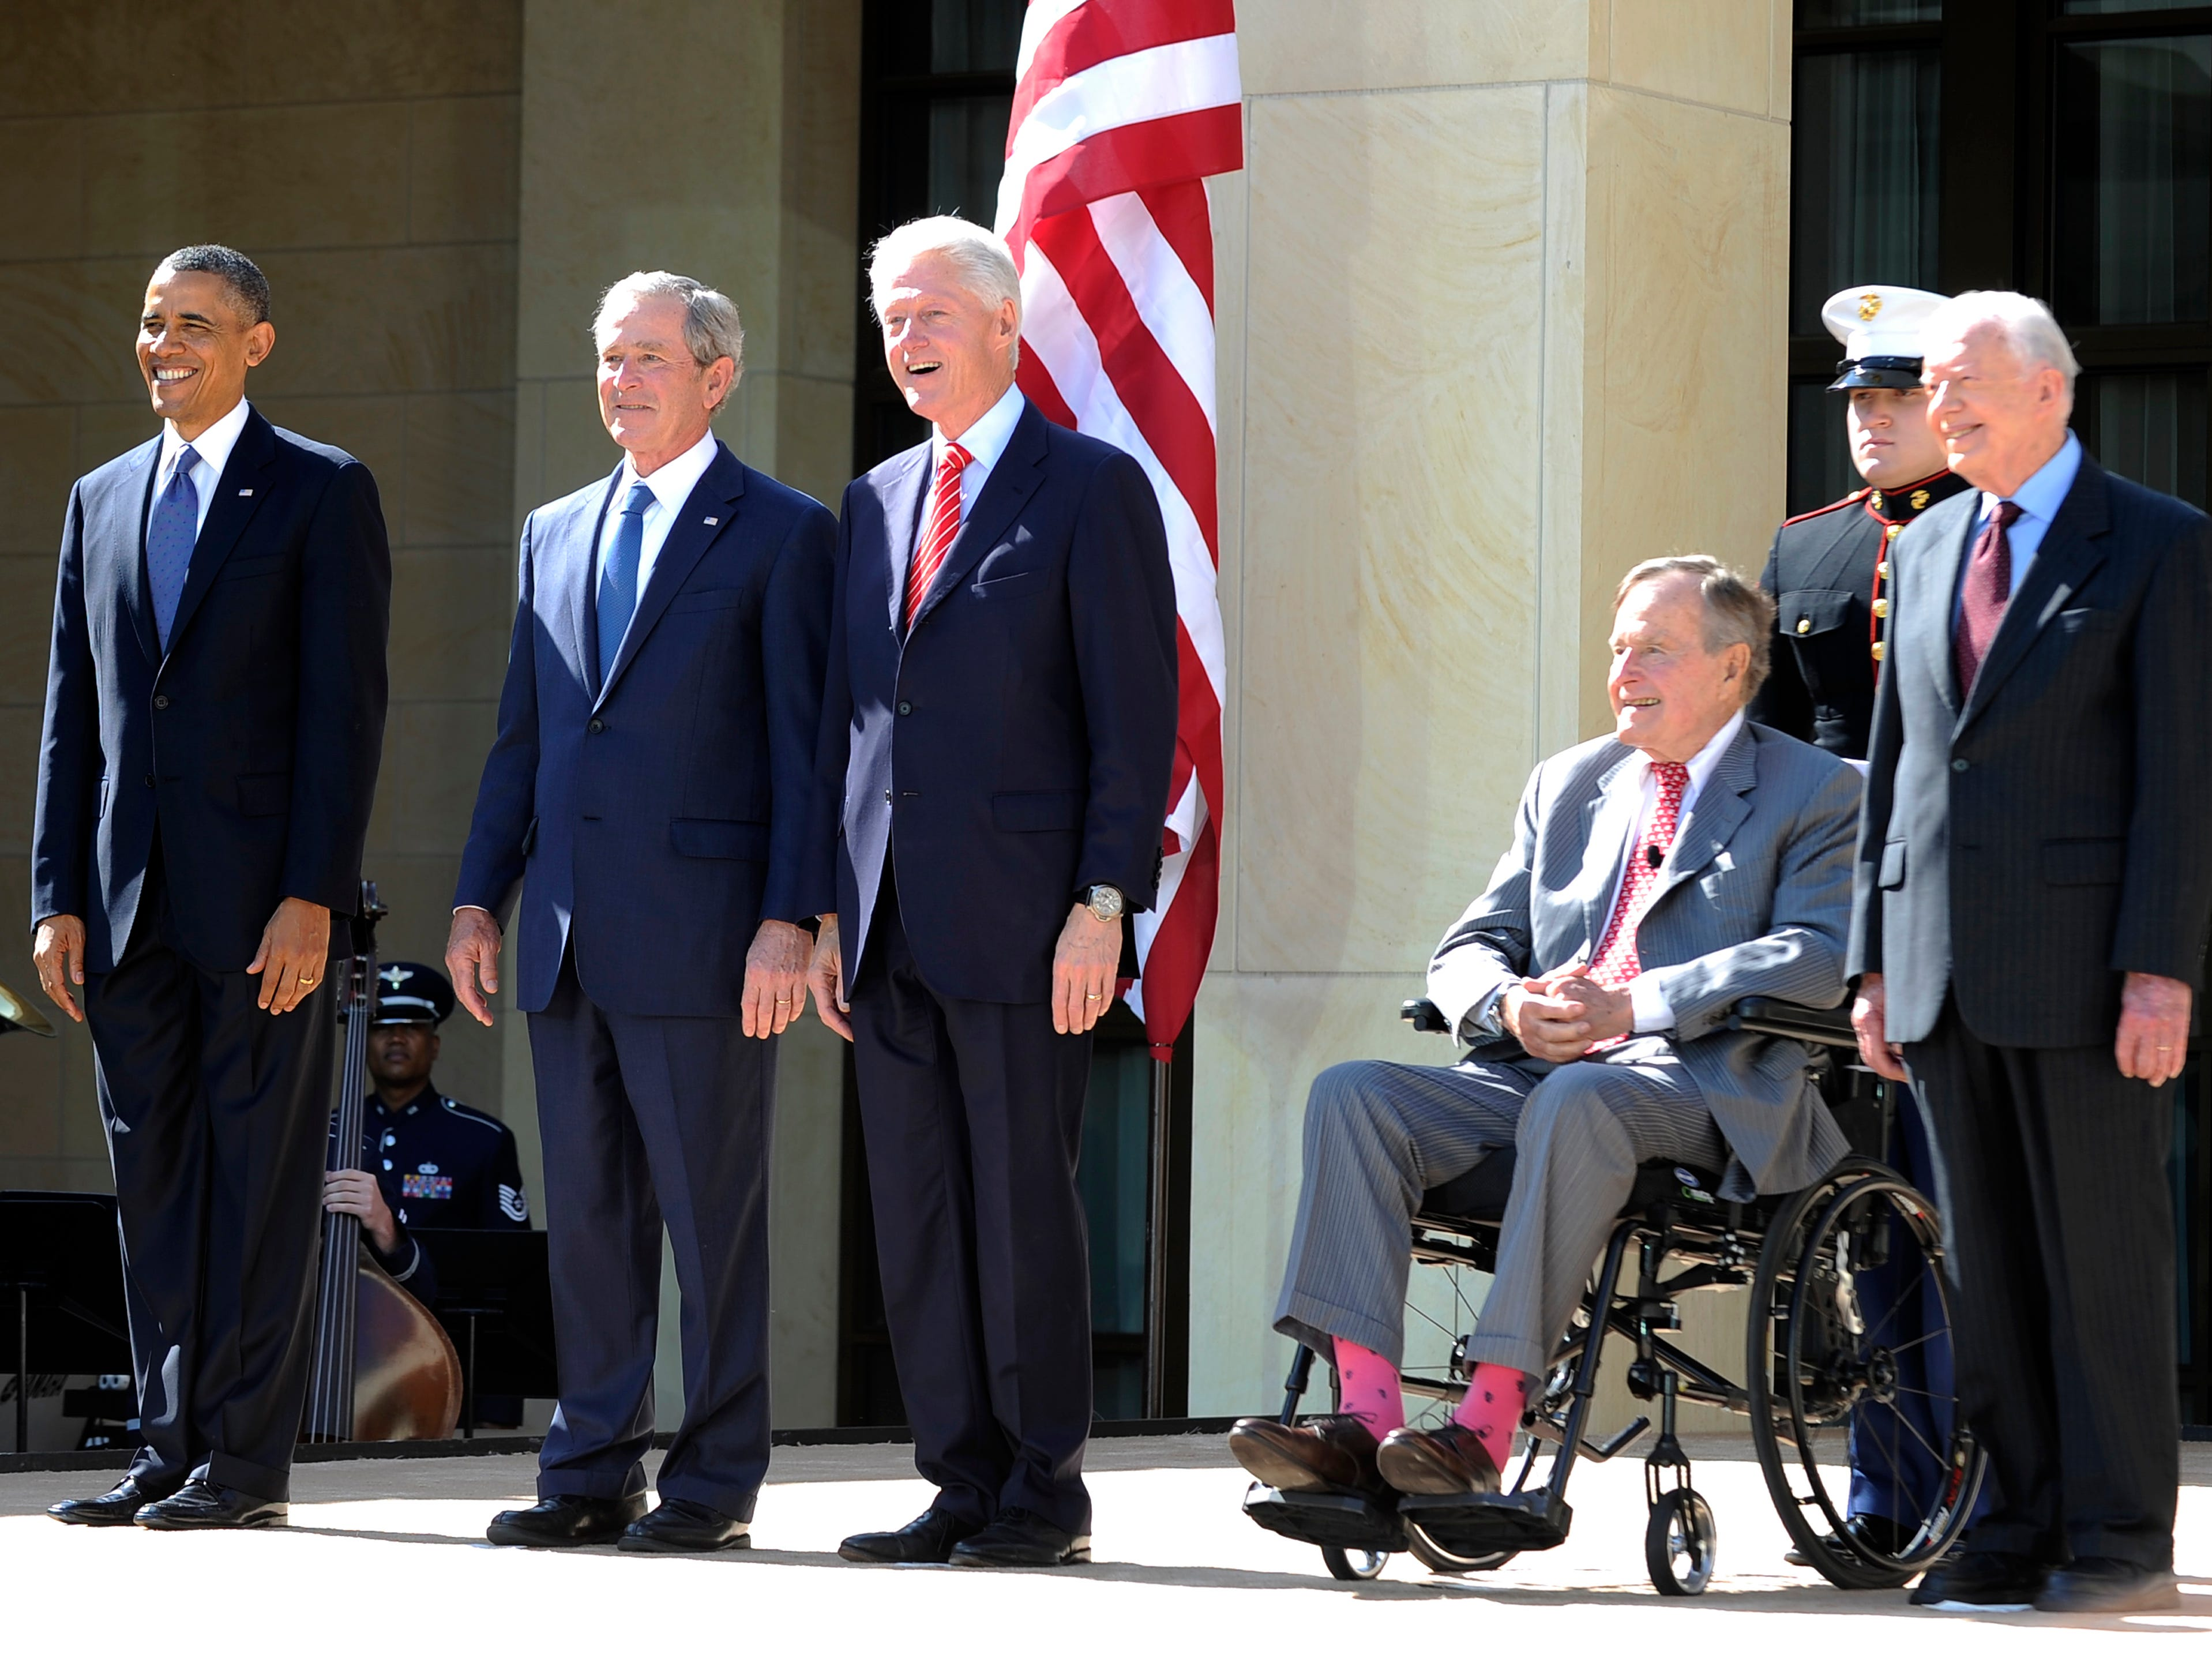 President Barack Obama, left, and former presidents George W. Bush, Bill Clinton, George H.W. Bush and Jimmy Carter arrive on stage for the George W. Bush Presidential Center dedication ceremony in Dallas, Texas, on April 25, 2013.